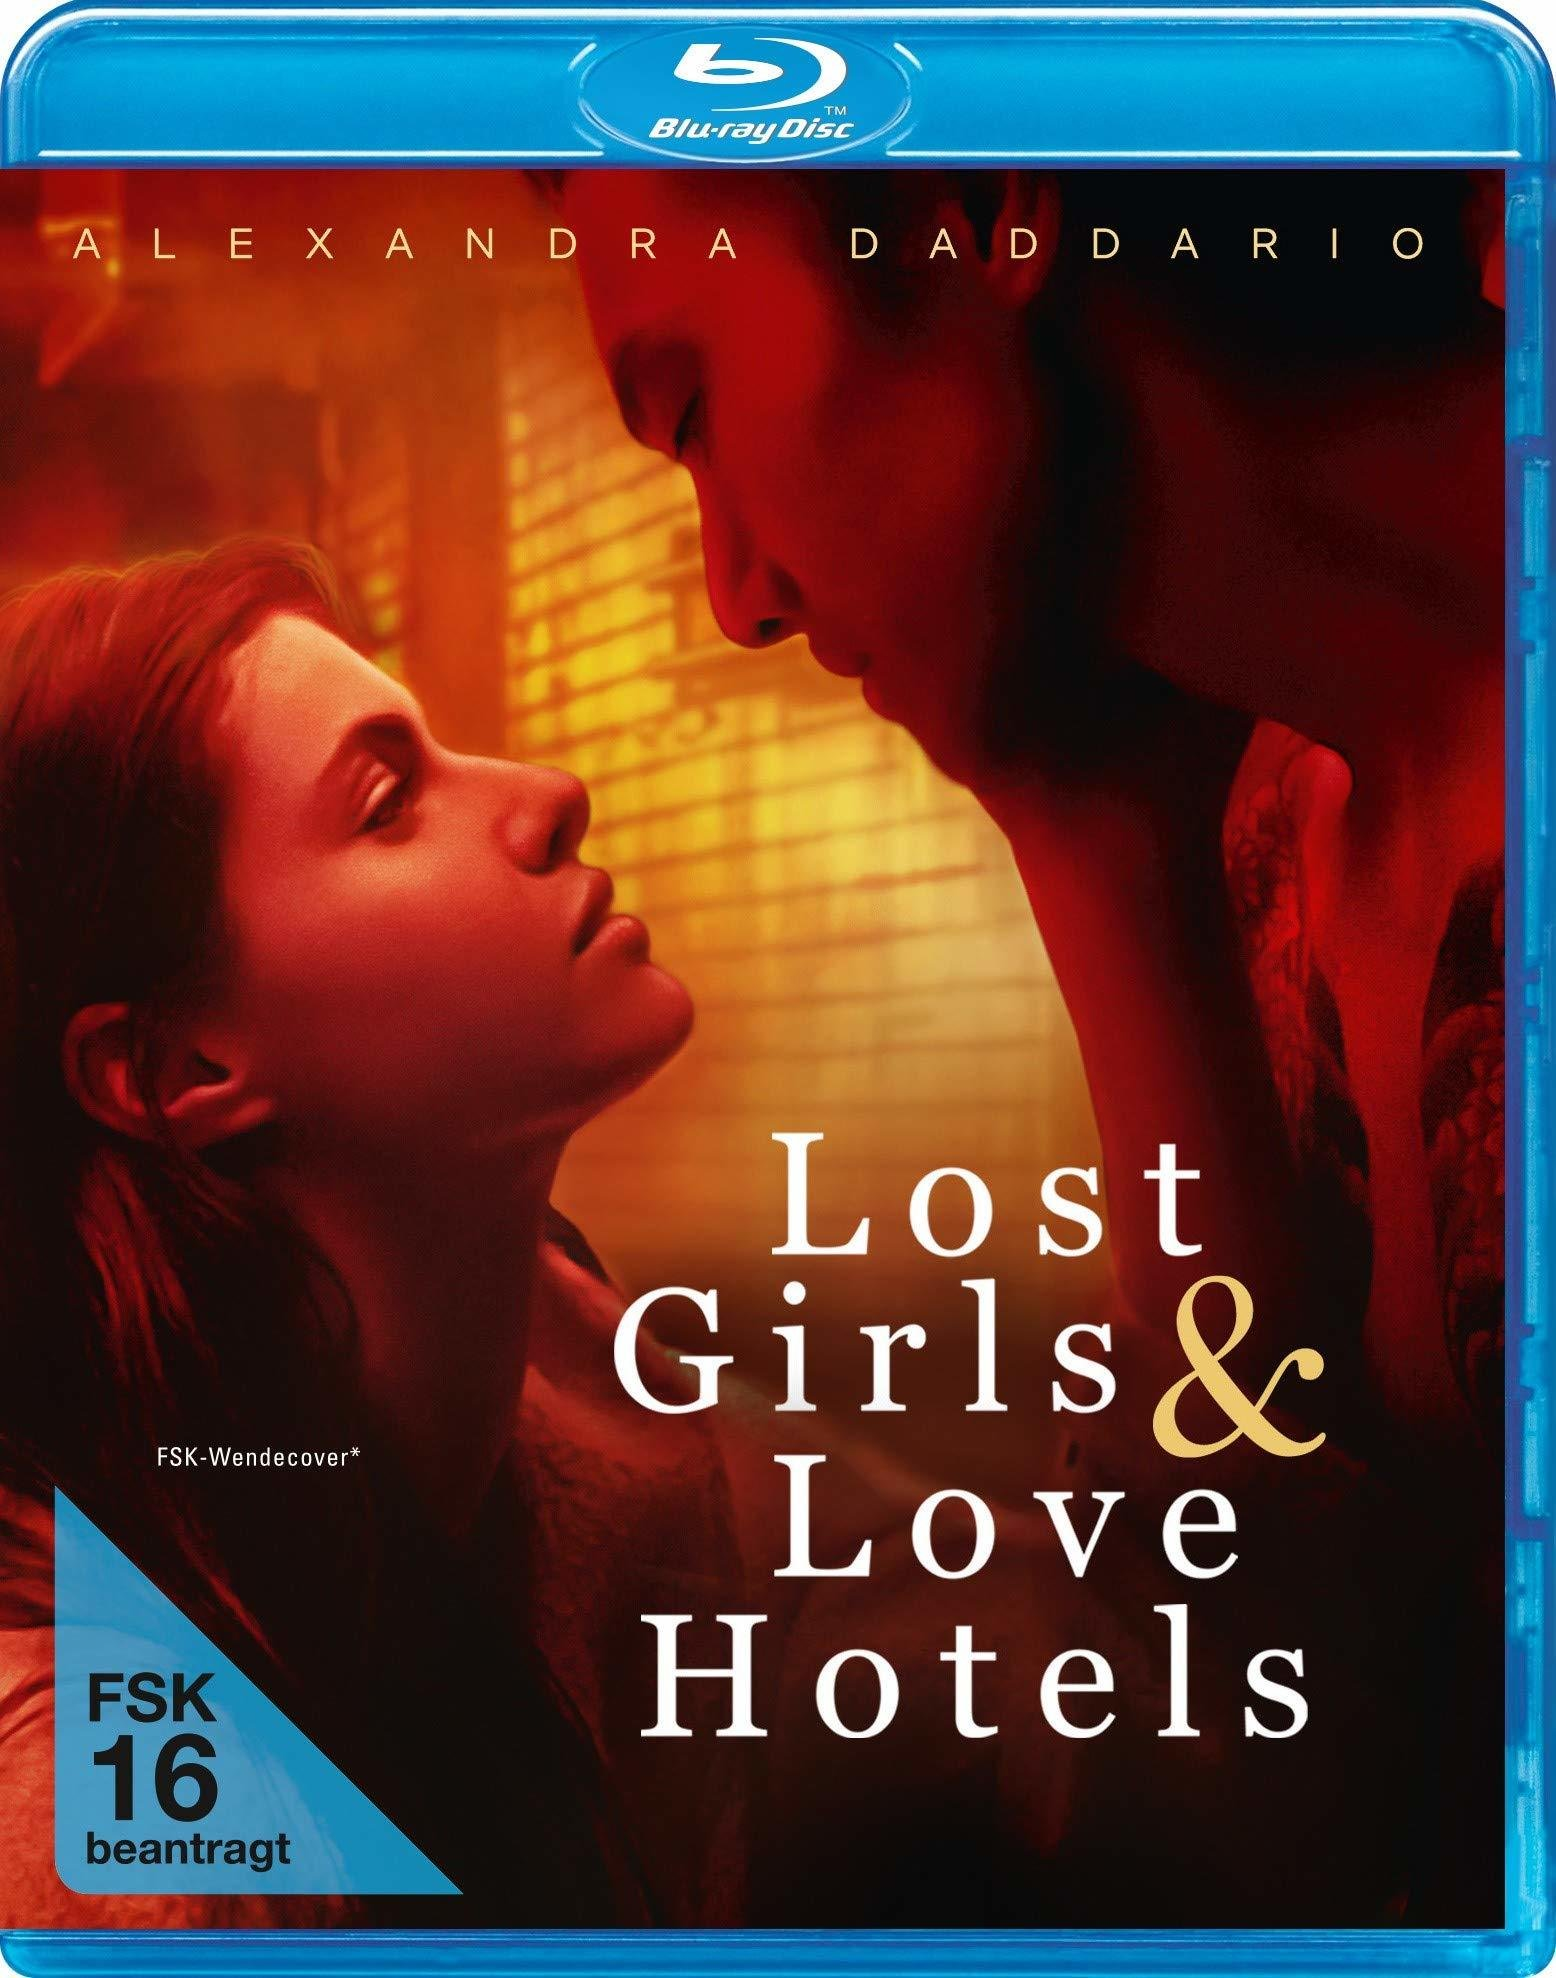 Lost Girls and Love Hotels (2020) poster image